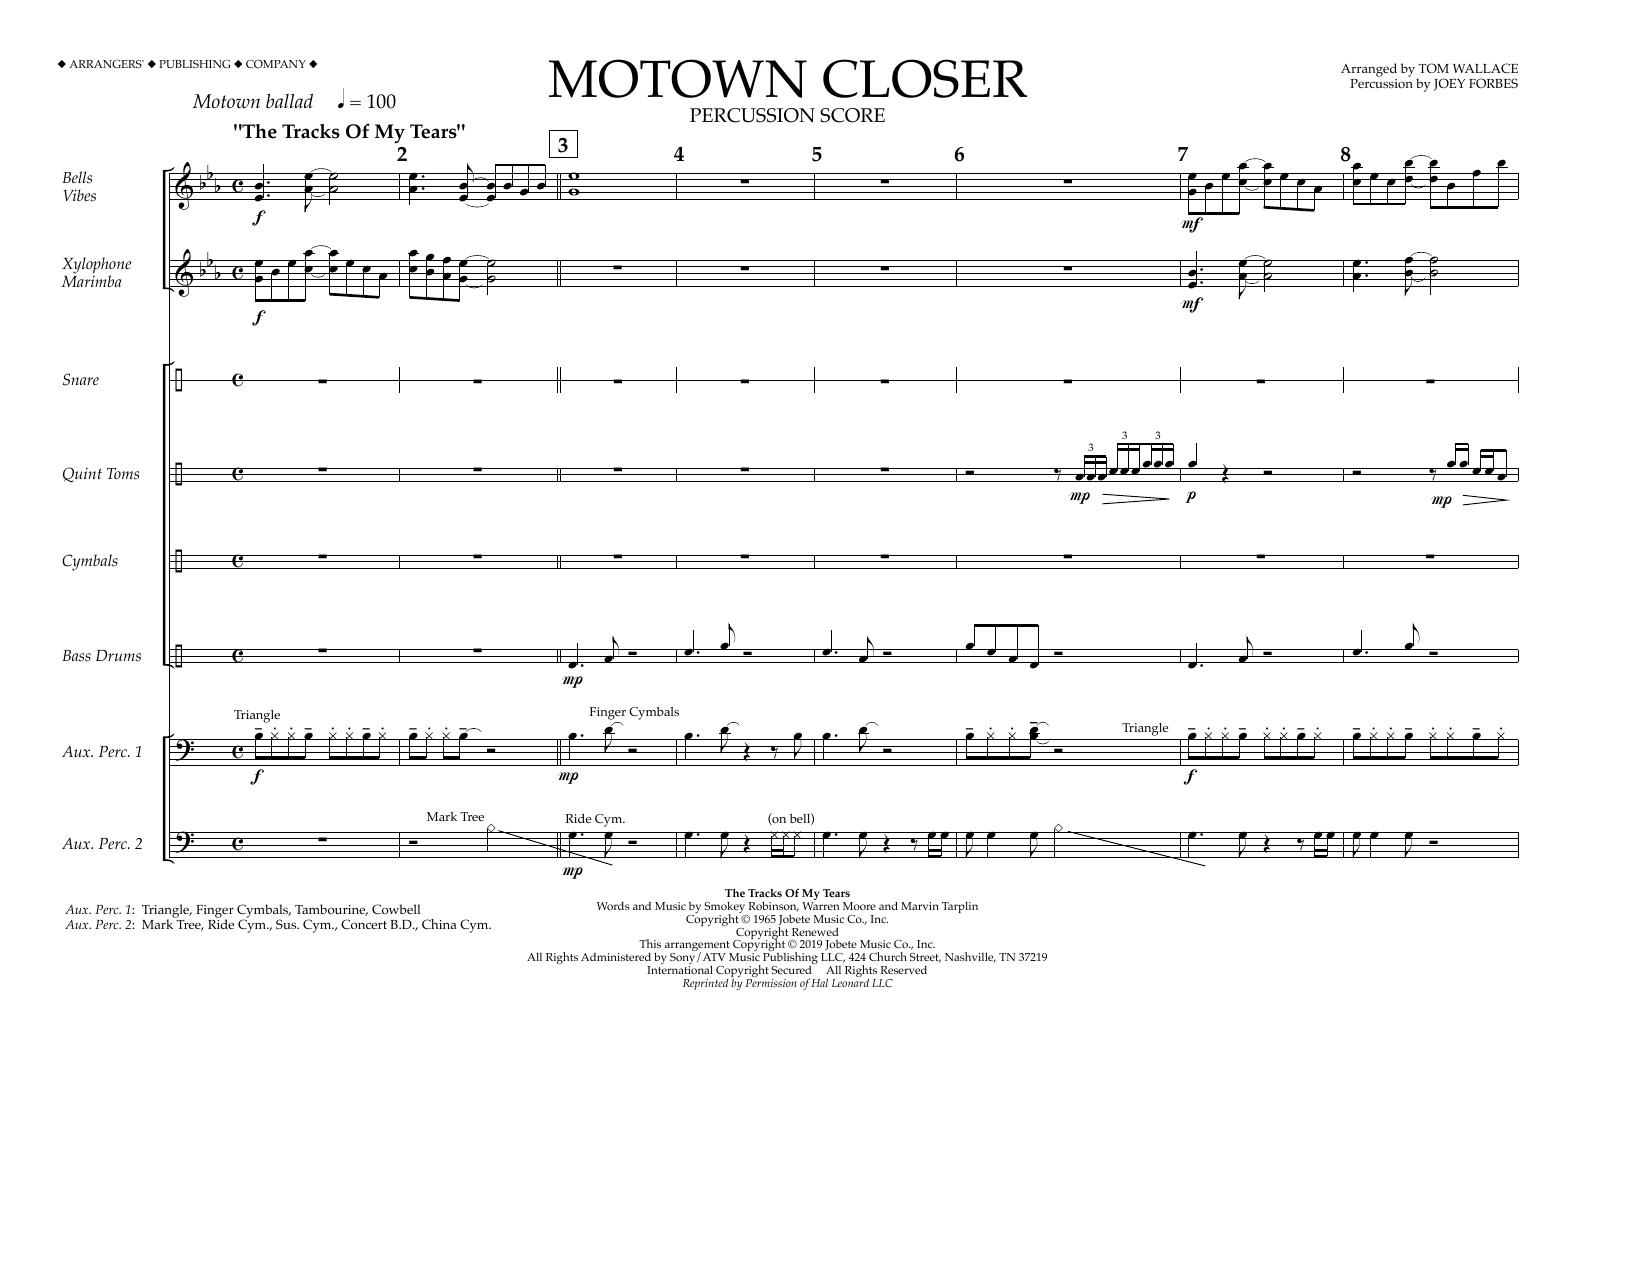 Smokey Robinson Motown Closer (arr. Tom Wallace) - Percussion Score sheet music notes and chords. Download Printable PDF.